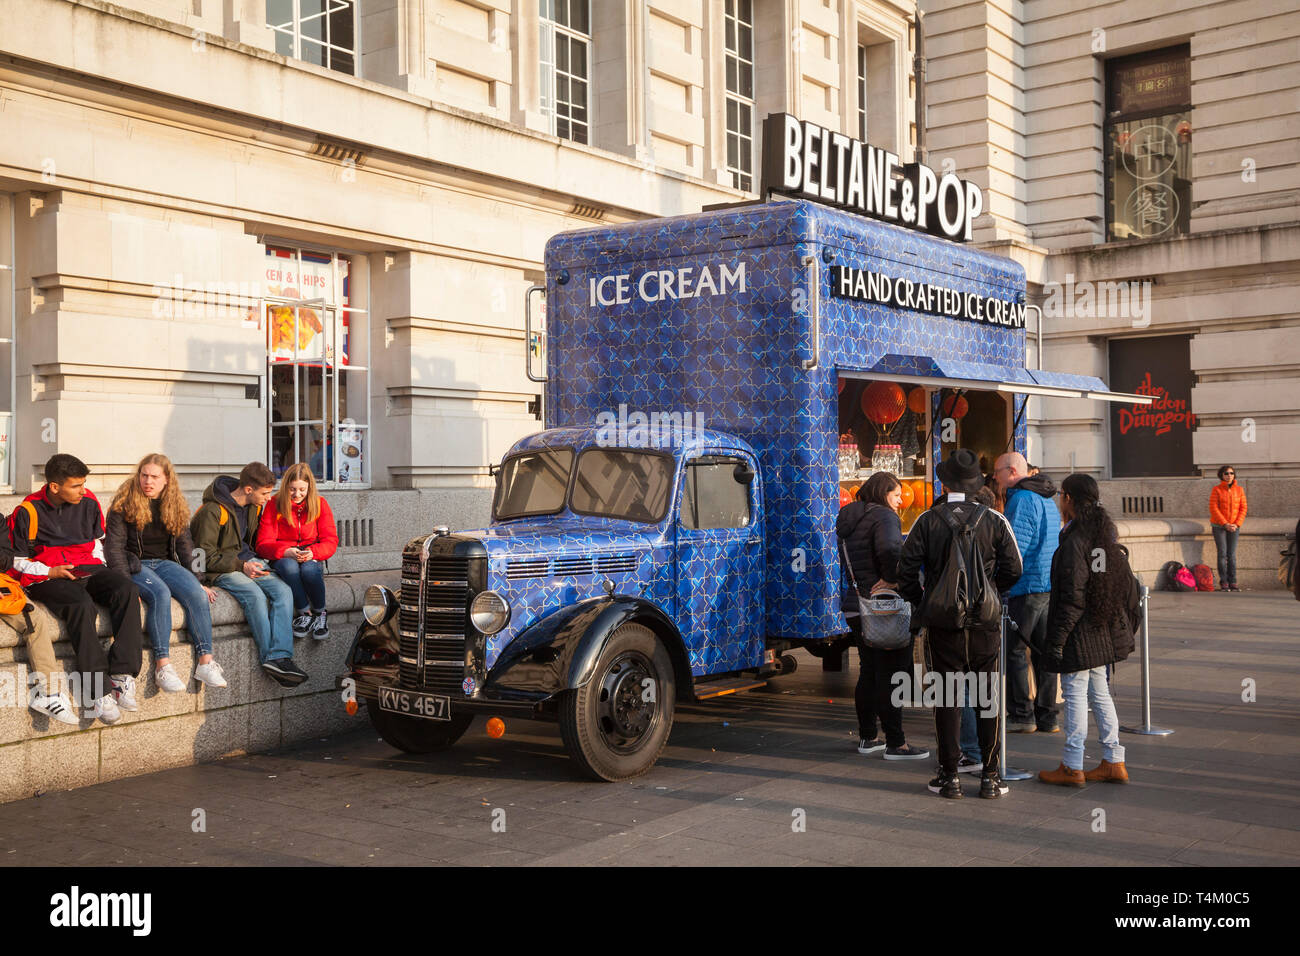 Tourists queue to buy hand-crafted ice-creams from a converted vintage Bedford ice cream van by Westminster Bridge, London - Stock Image